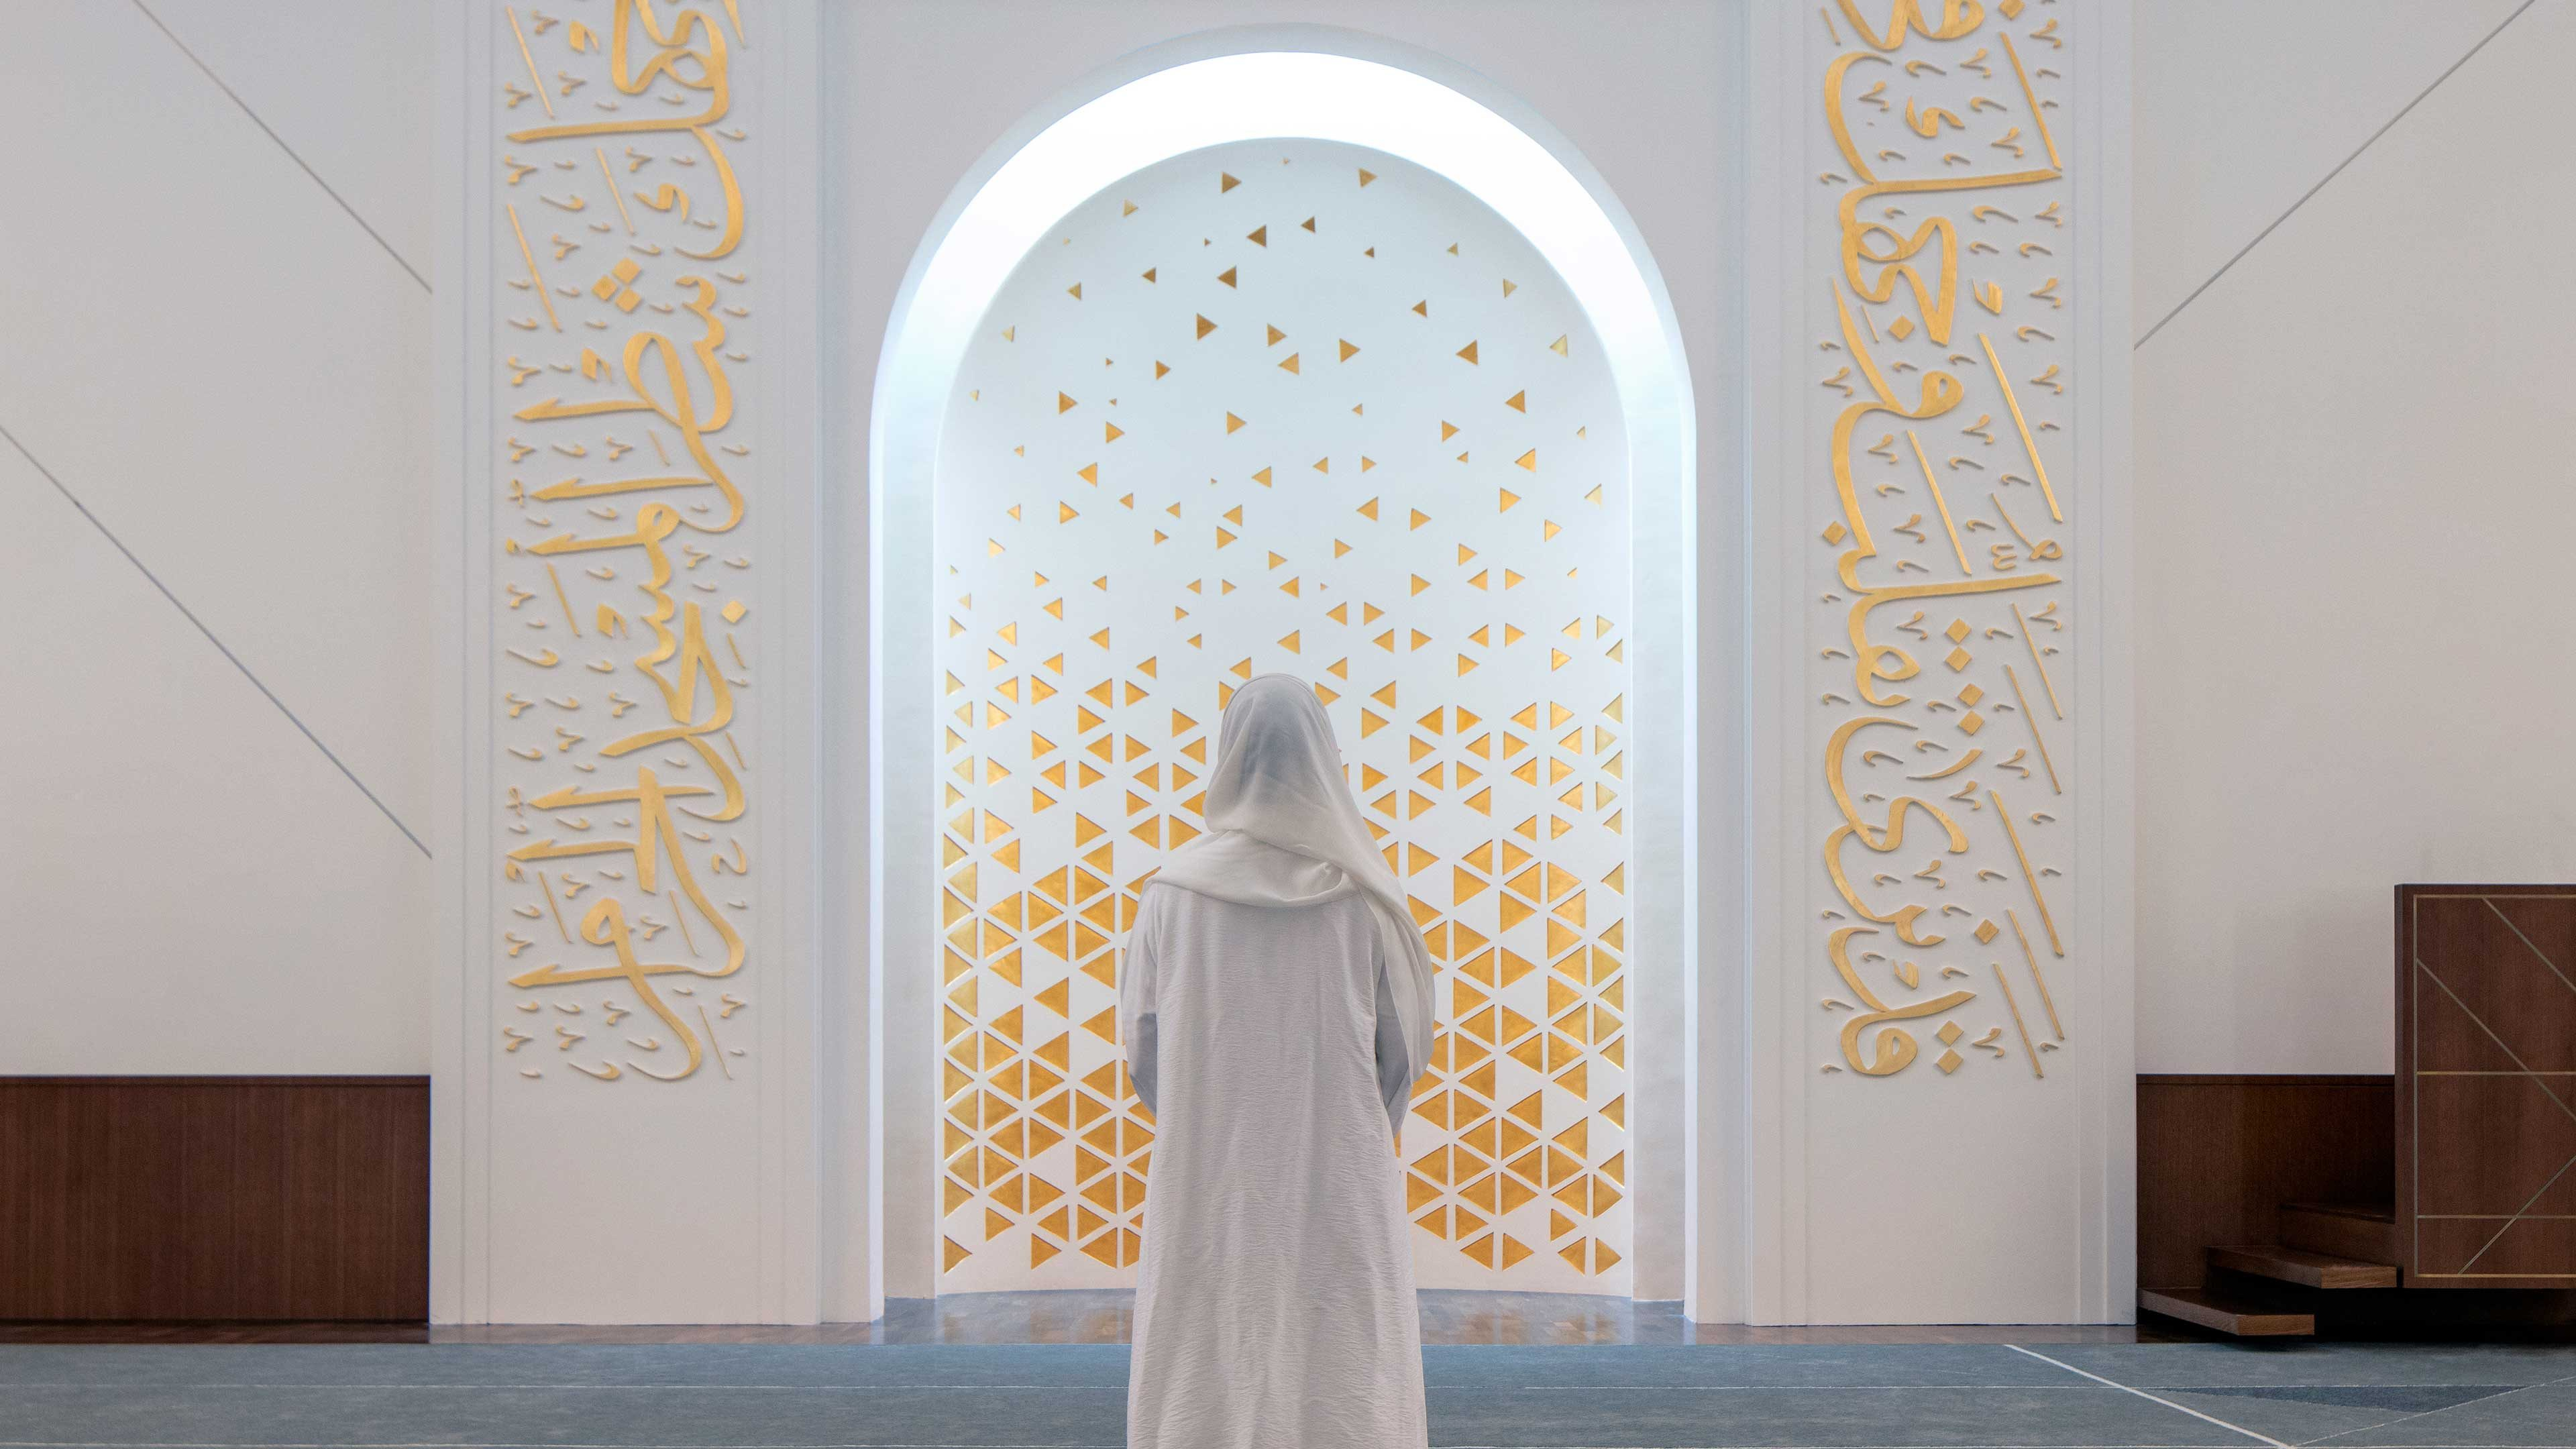 Architectural Lighting Contemporary Mosque Softly Illuminated Mihrab Design Consultants